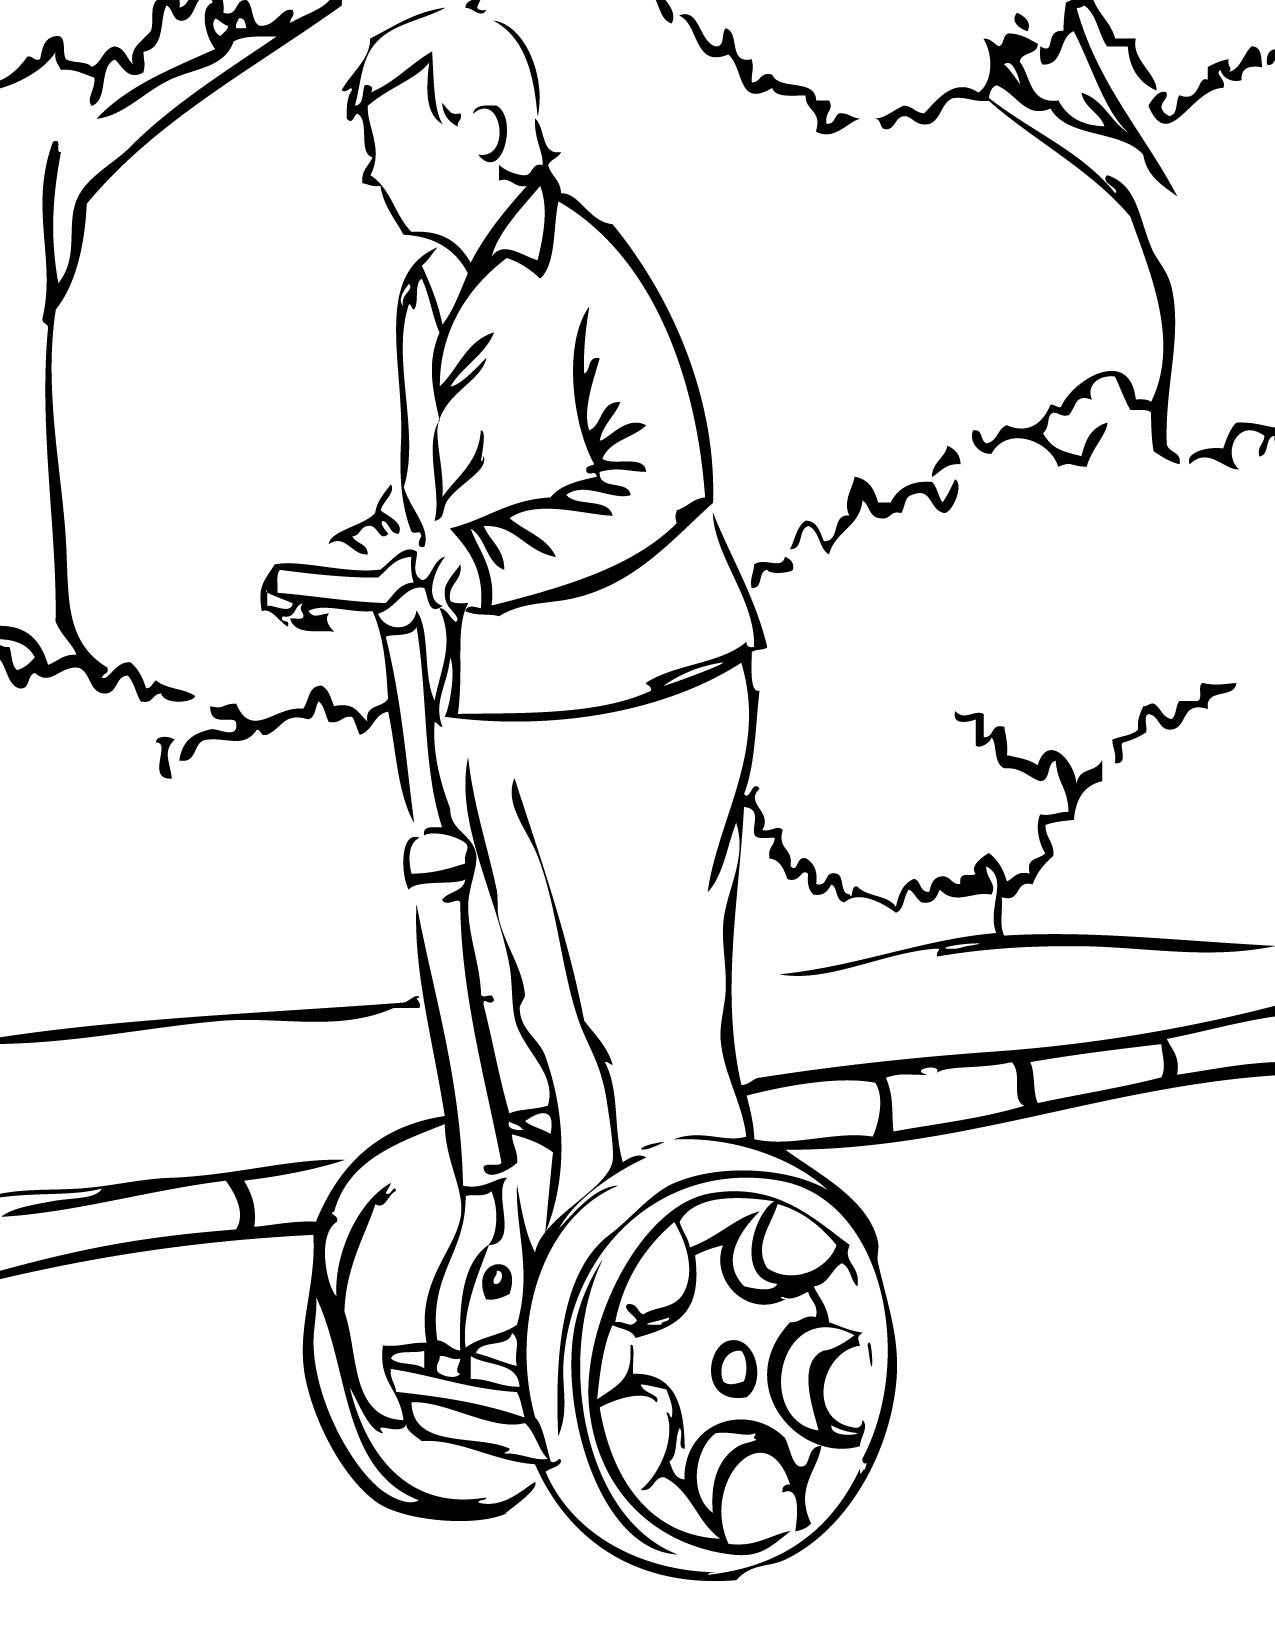 Hoverboard Coloring Sheets Coloring Pages